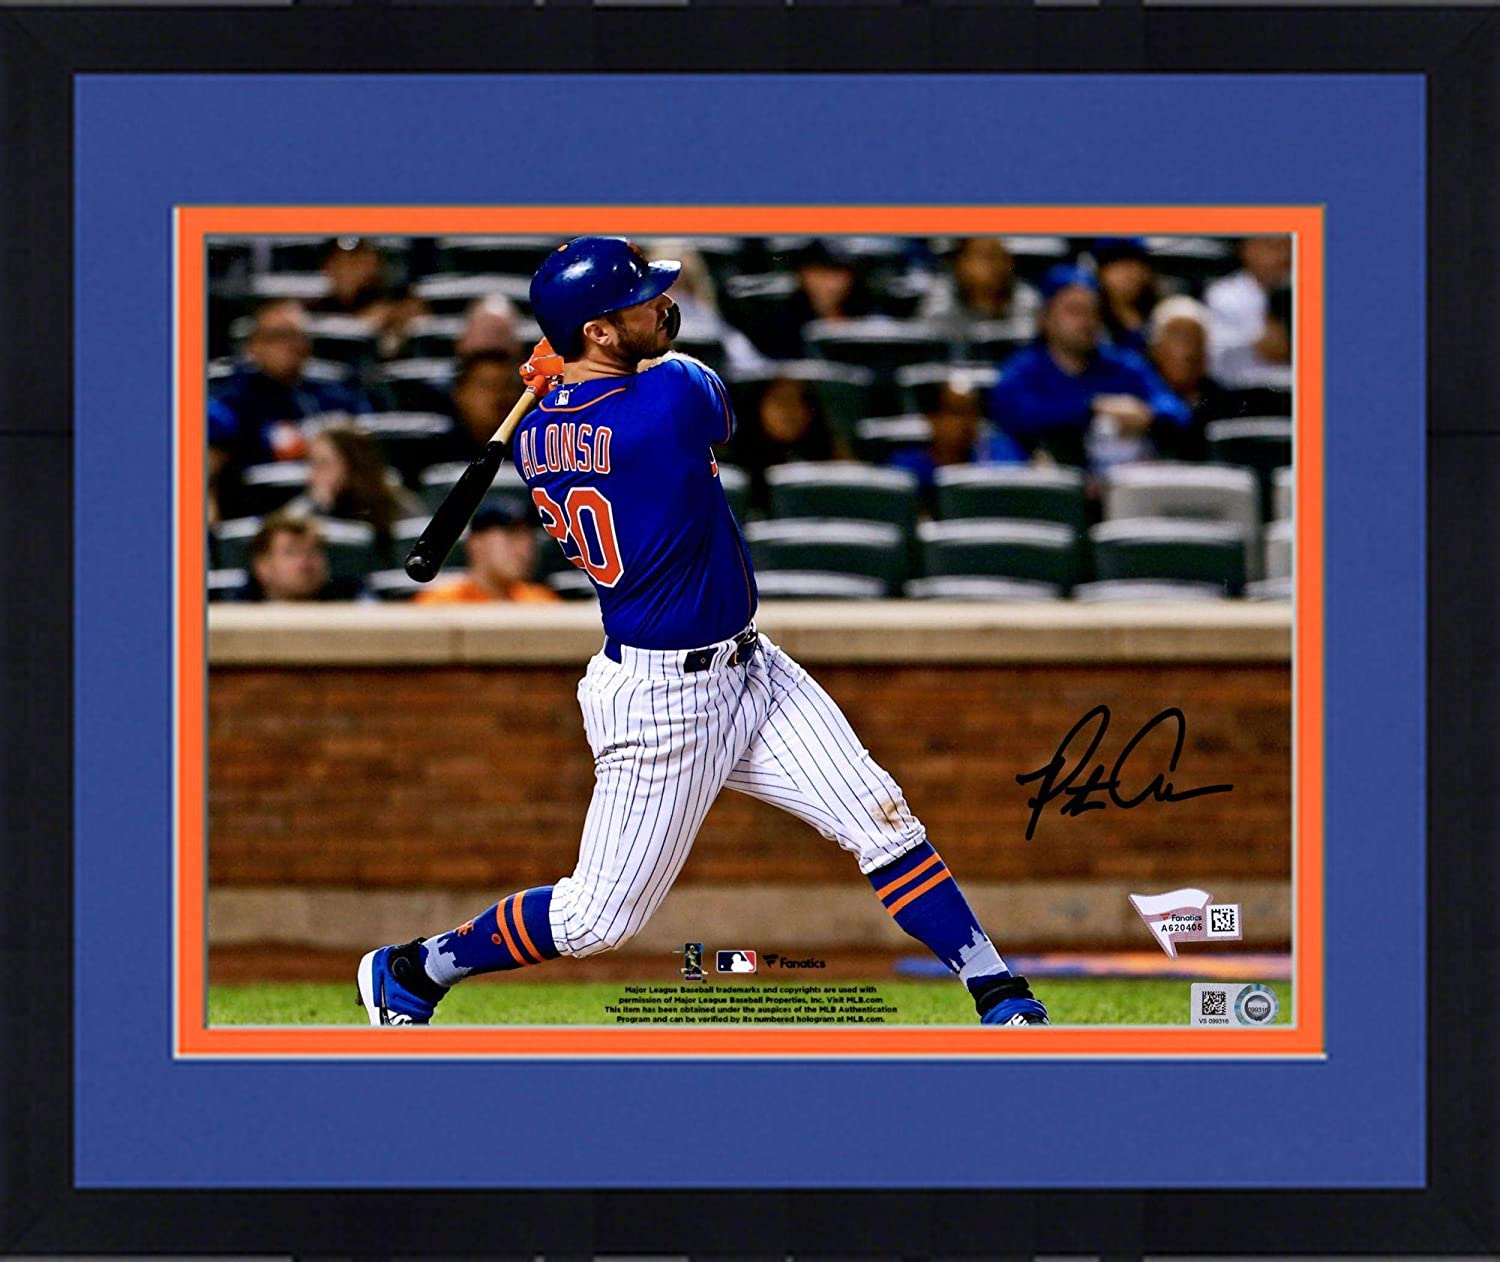 Fanatics Authentic Certified Framed Pete Alonso New York Mets Autographed 8 x 10 Swinging Photograph